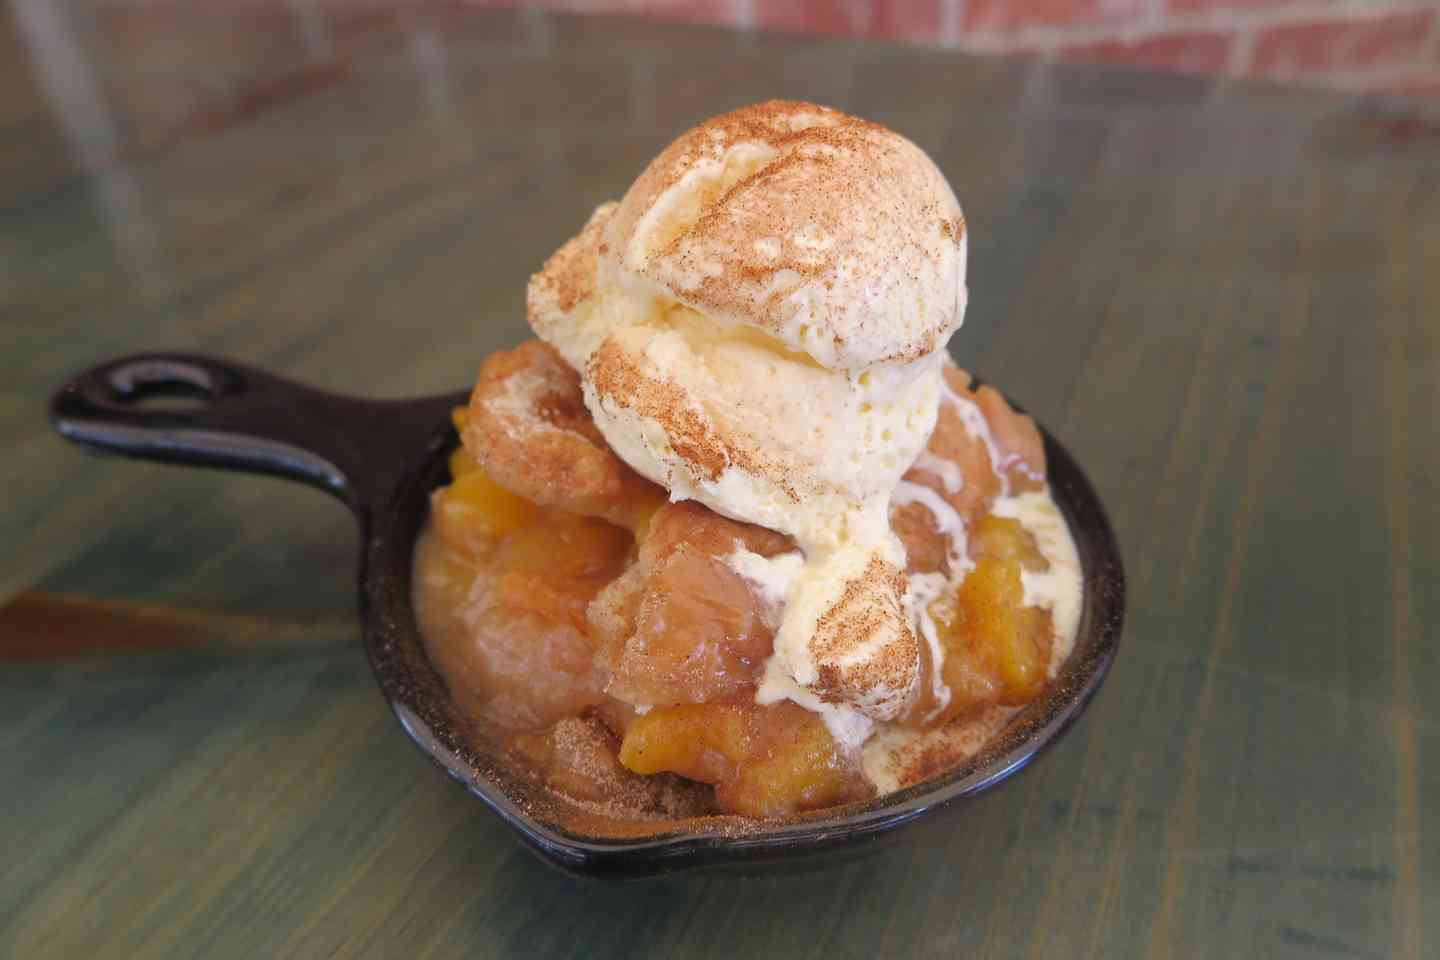 Family Peach Cobbler (feeds 4-6)